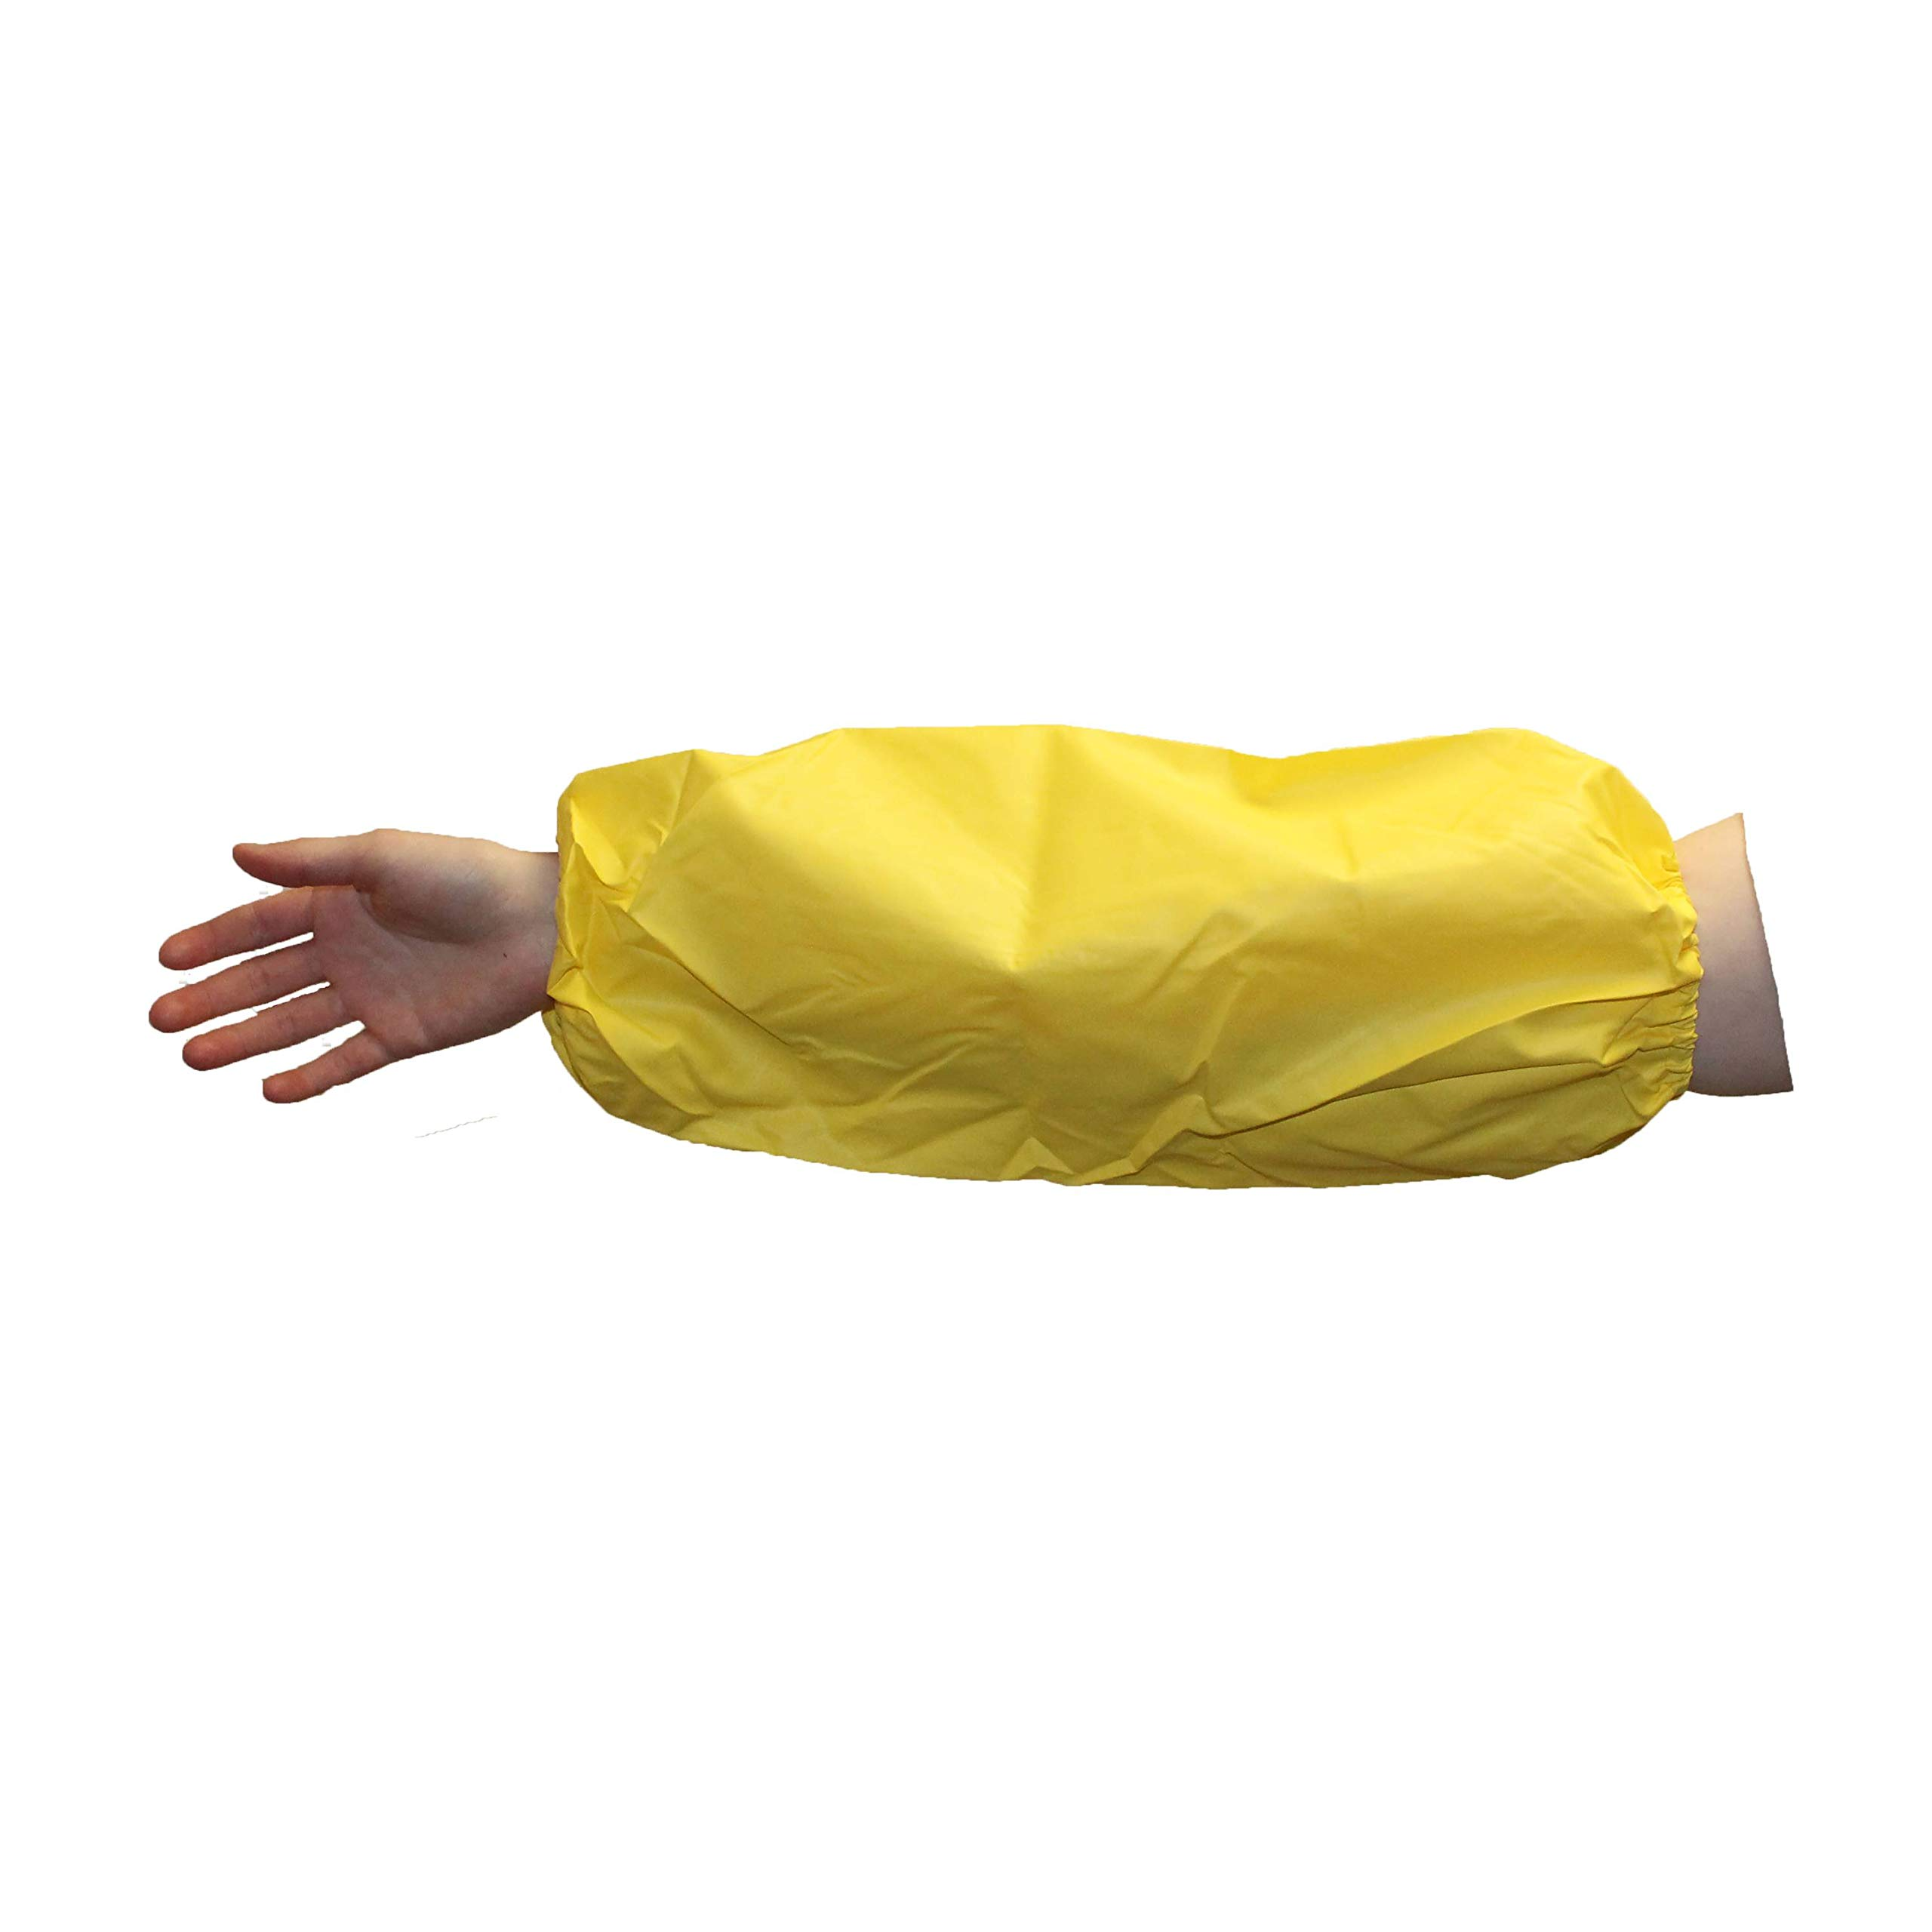 24 Pcs Urethane Waterproof Sleeves 18'' Long, Chemical Resistant Arm Covers Protective Plastic Oversleeves 6 Mil Thick with Elastic Ends, Latex Free, Yellow, Chemical Processing, Food Safe by C2 Eco Supplies